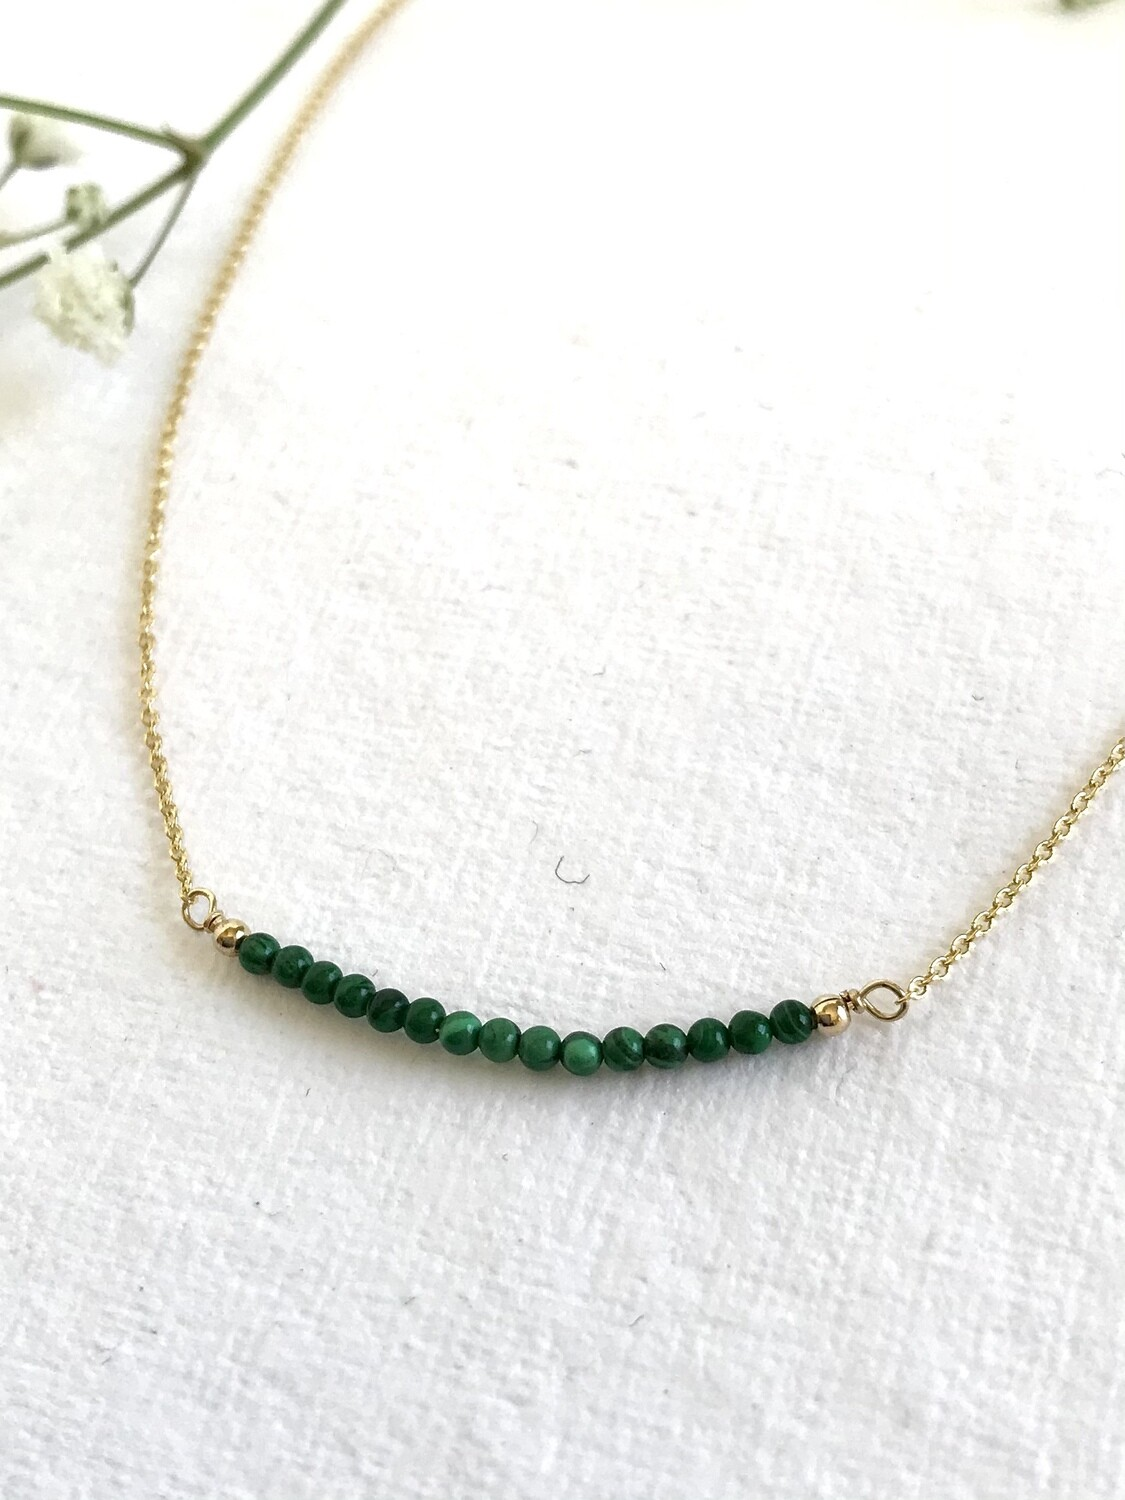 Malachite Artemis Necklace - GDFDSN12